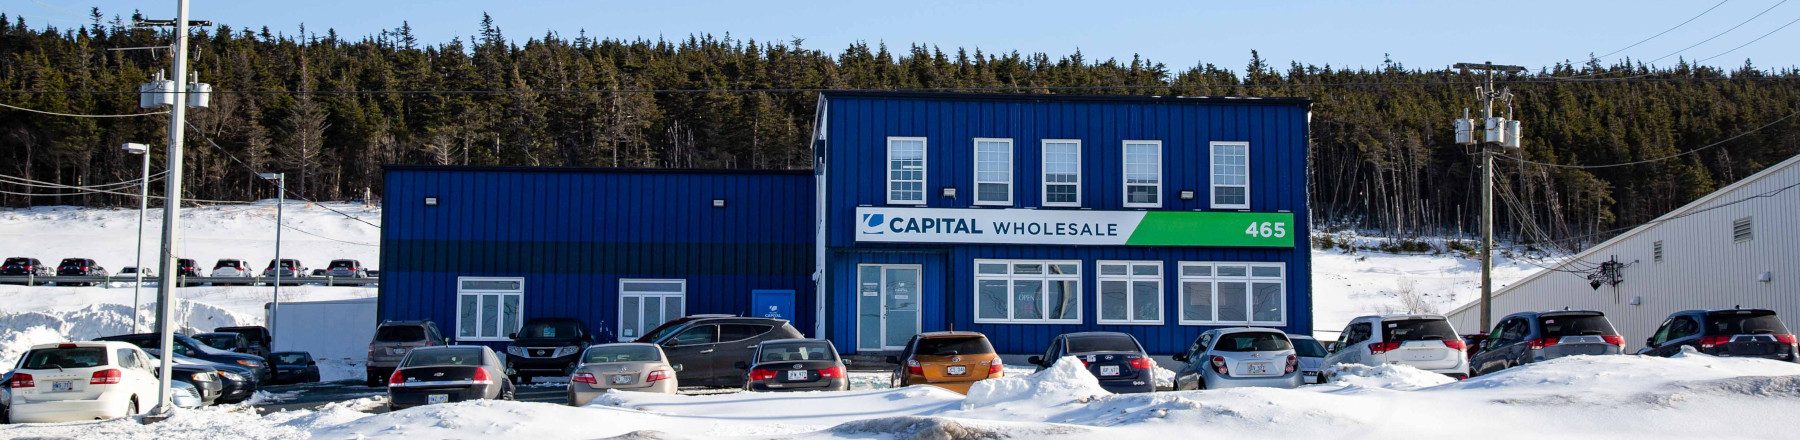 Capital Wholesale